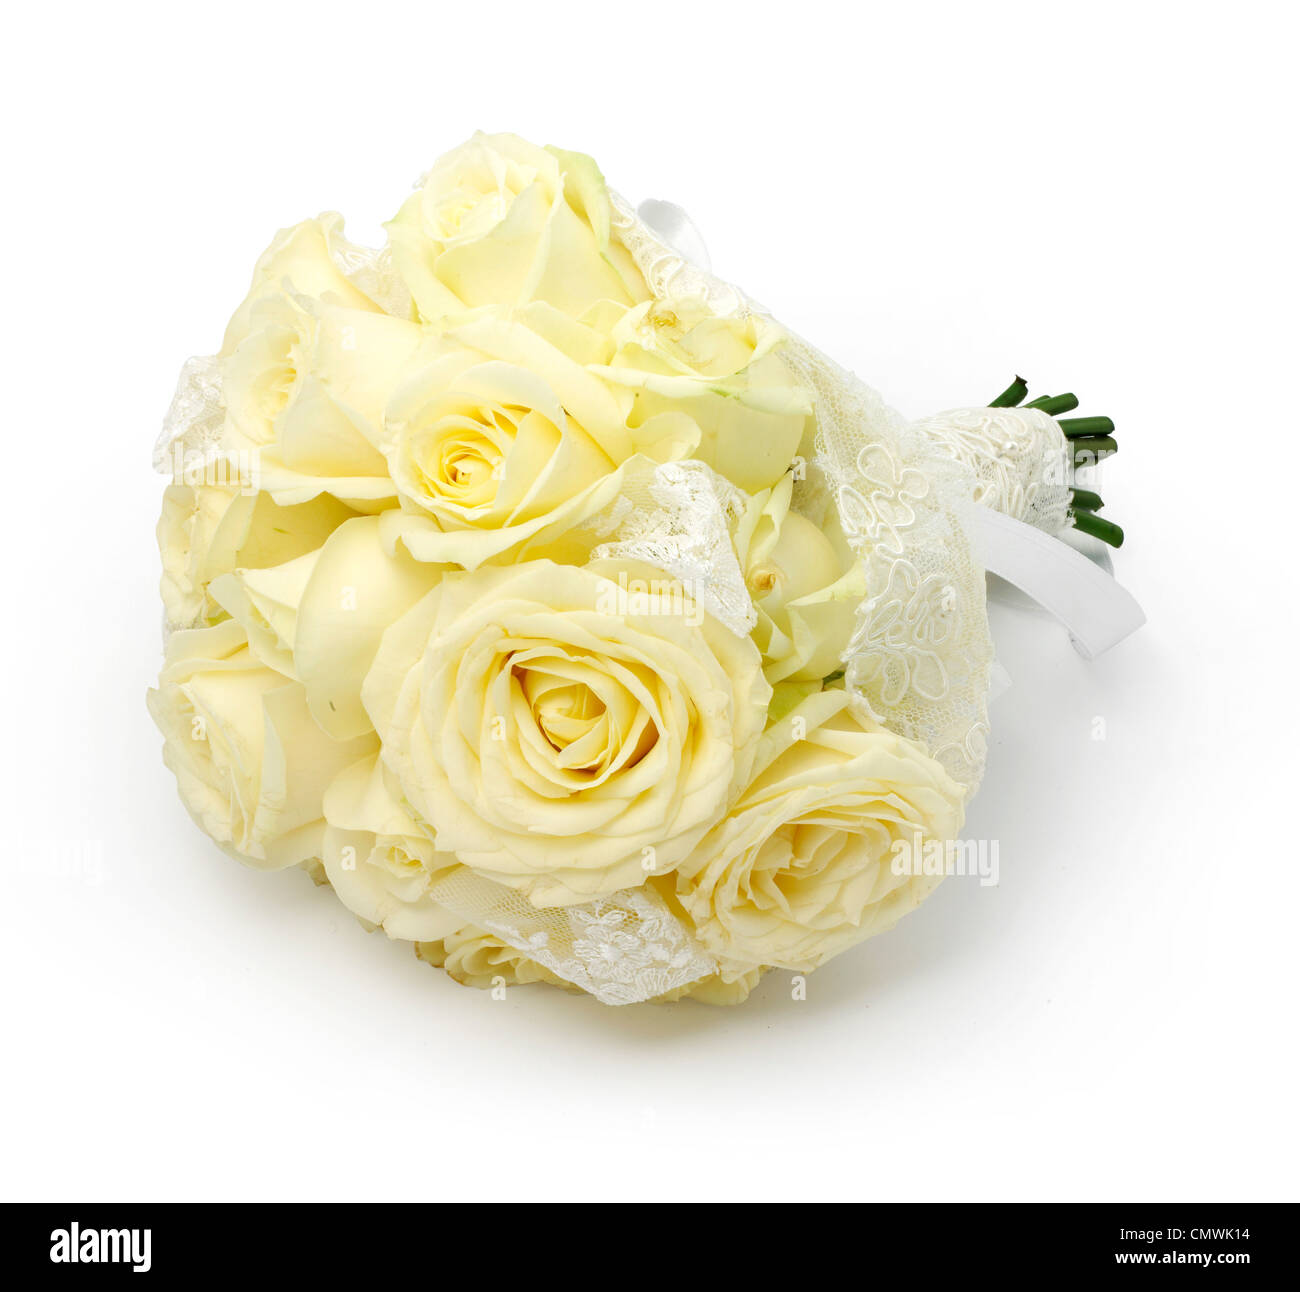 One bouquet wedding flowers - Stock Image